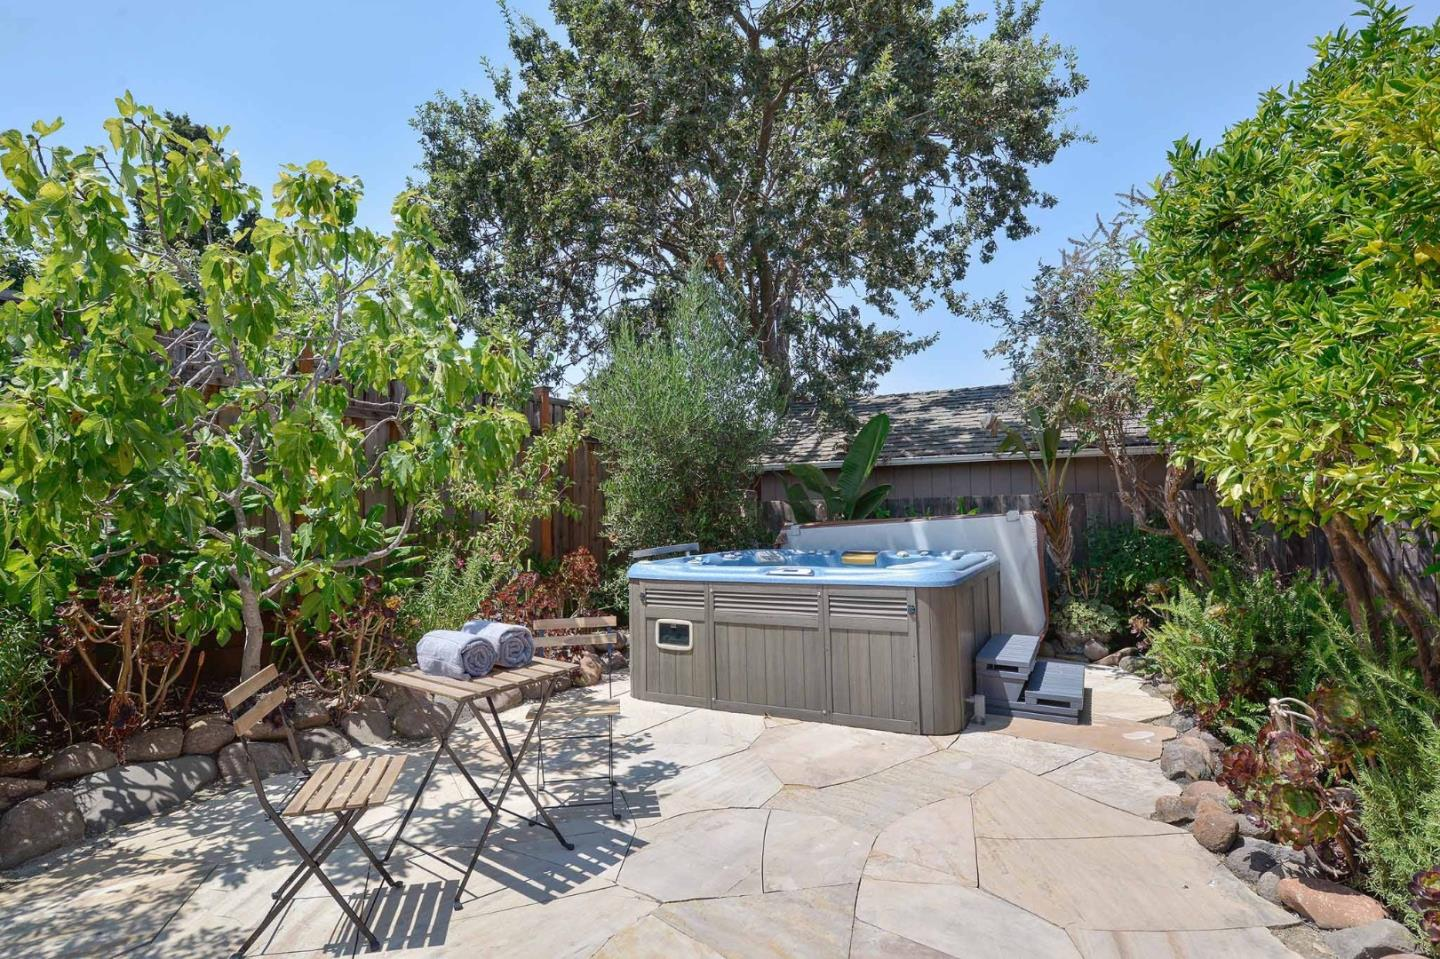 218 Alameda De Las Pulgas Redwood City, CA 94062 - MLS #: ML81717748